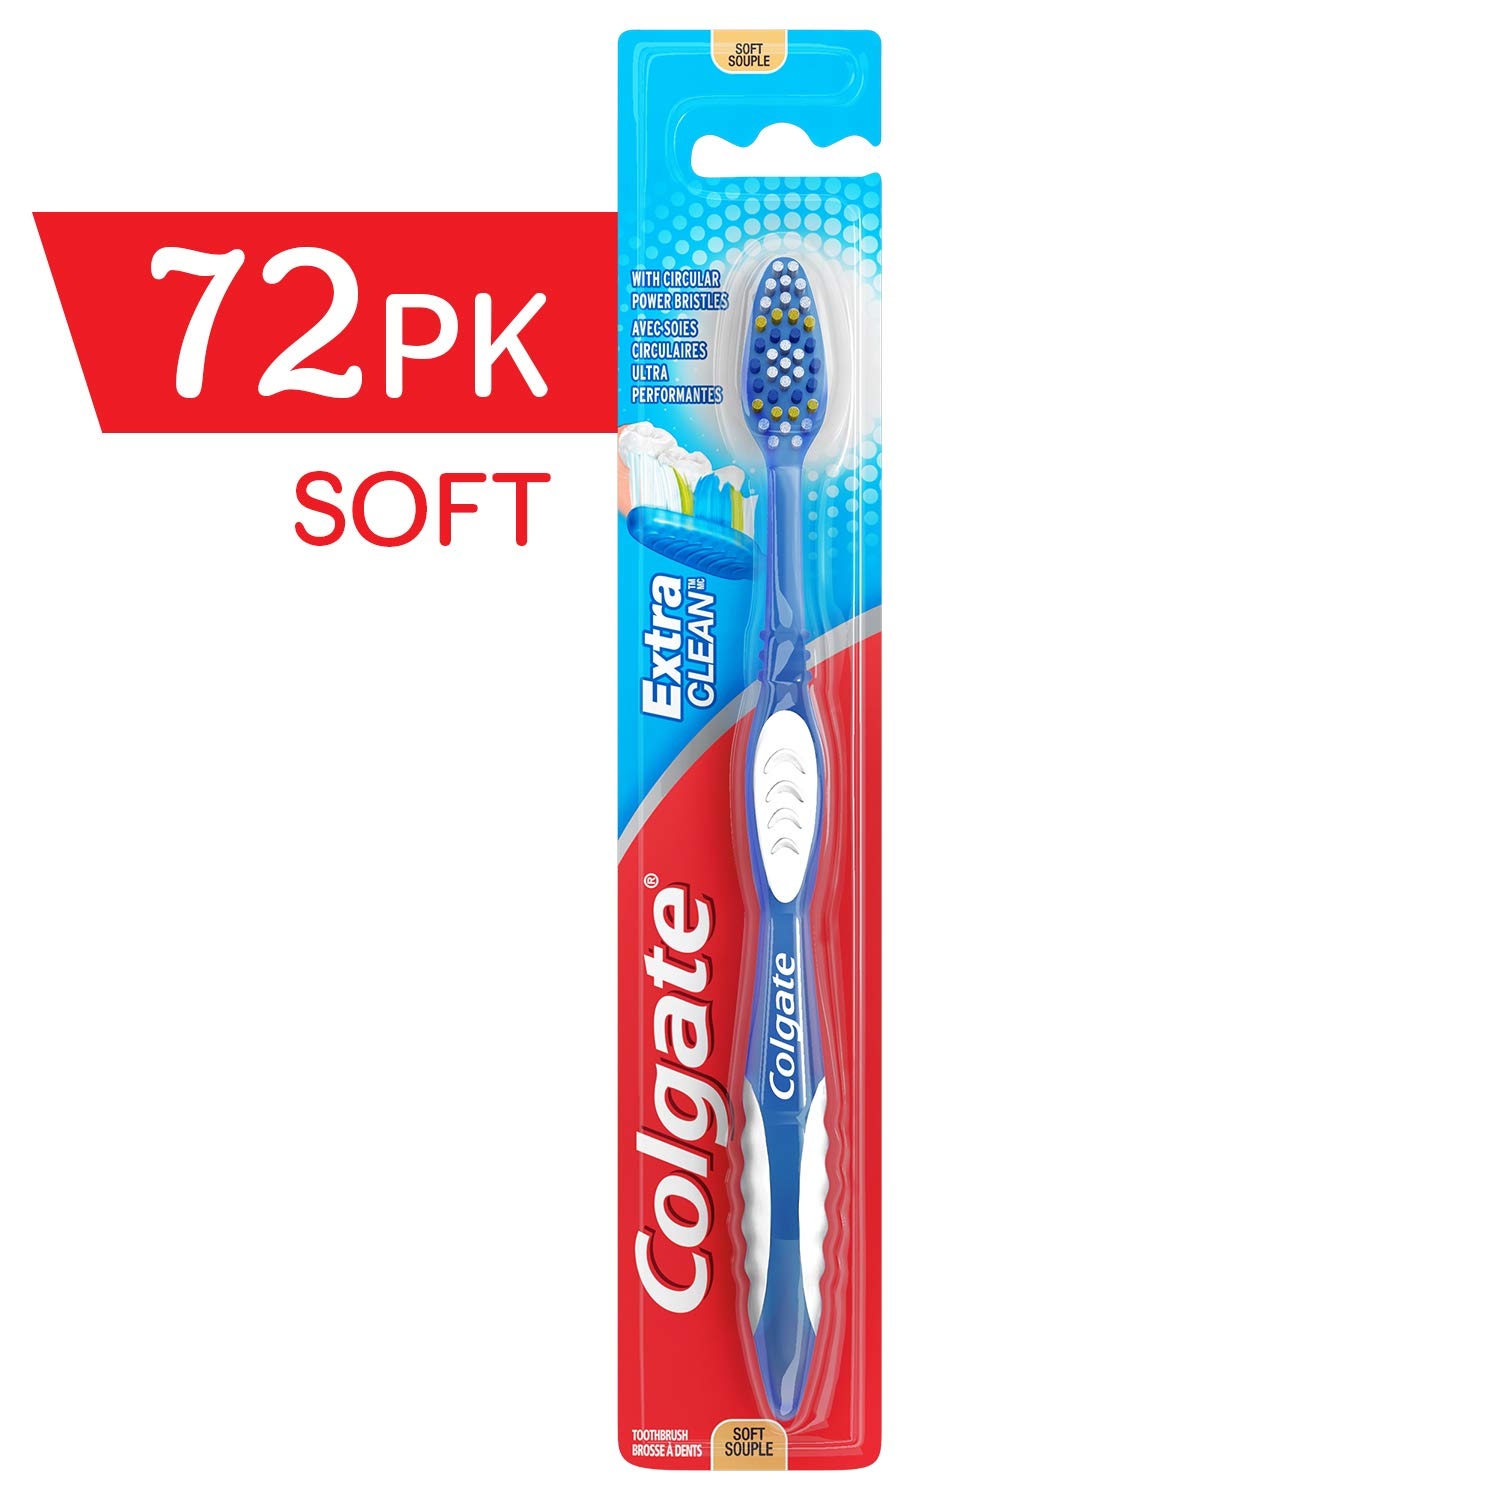 COLGATE Extra Clean Toothbrush Soft, Soft Toothbrush, Bulk Toothbrushes, Travel Toothbrush, (Case of 72) (Model Number: 155676) by Colgate